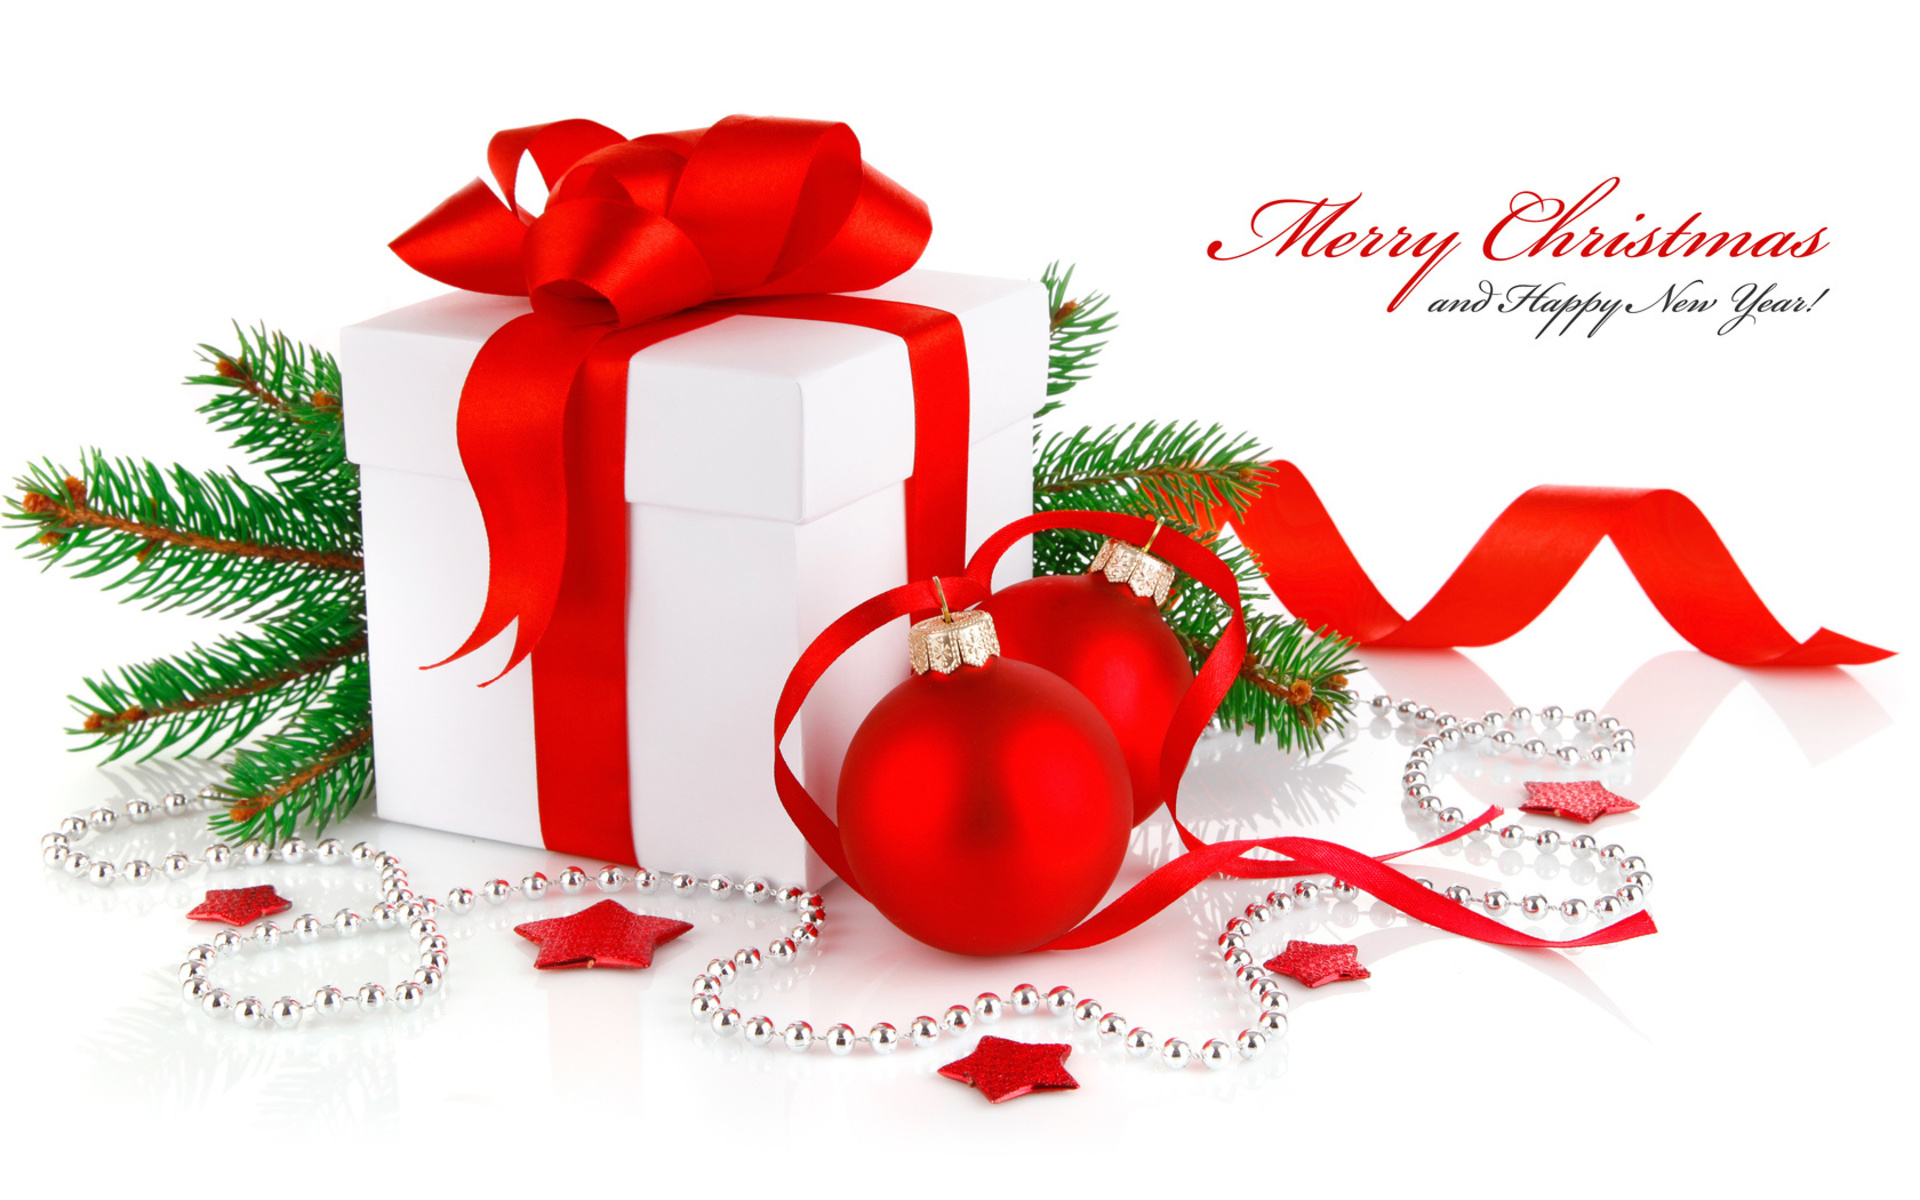 Christmas images Merry Christmas & Happy New Year! HD wallpaper and ...